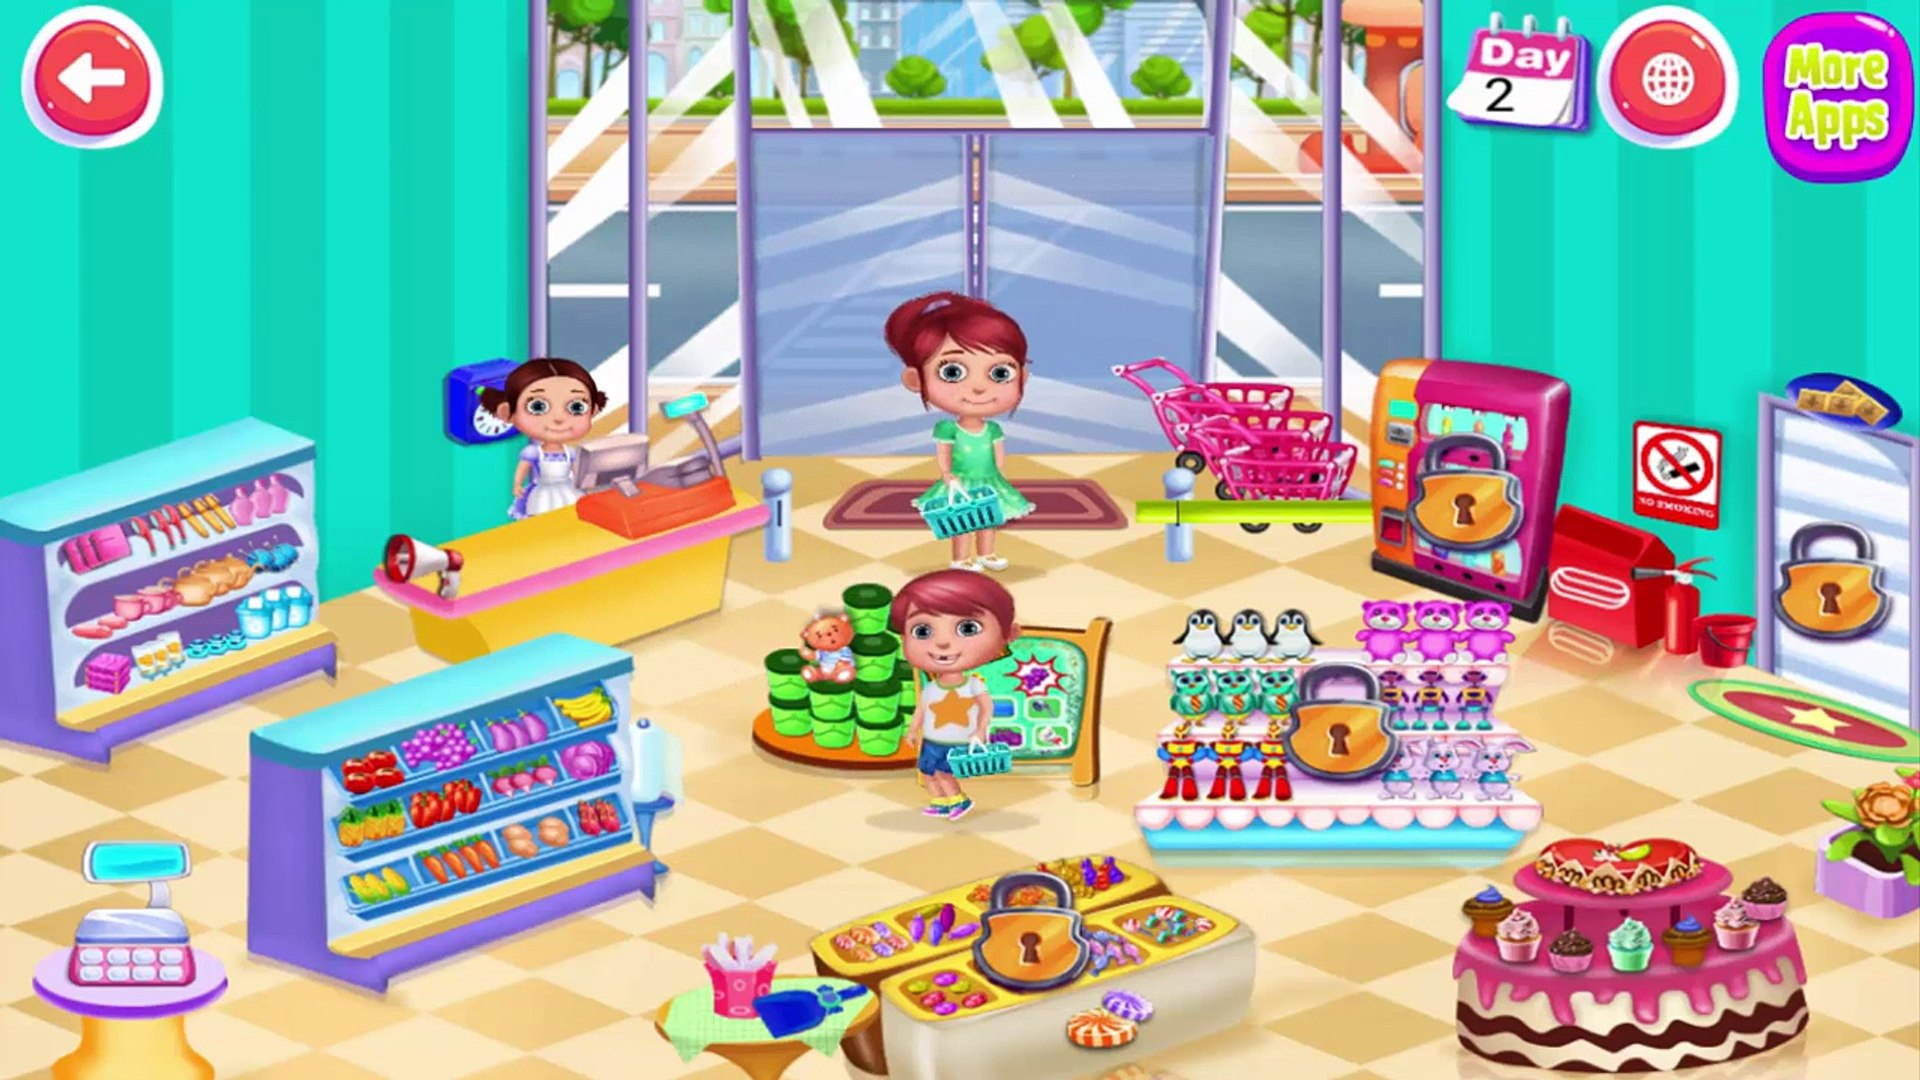 Kids Supermarket Adventure - Kids Play & Buy Cute Toys, Candy at Supermarket -Activities K